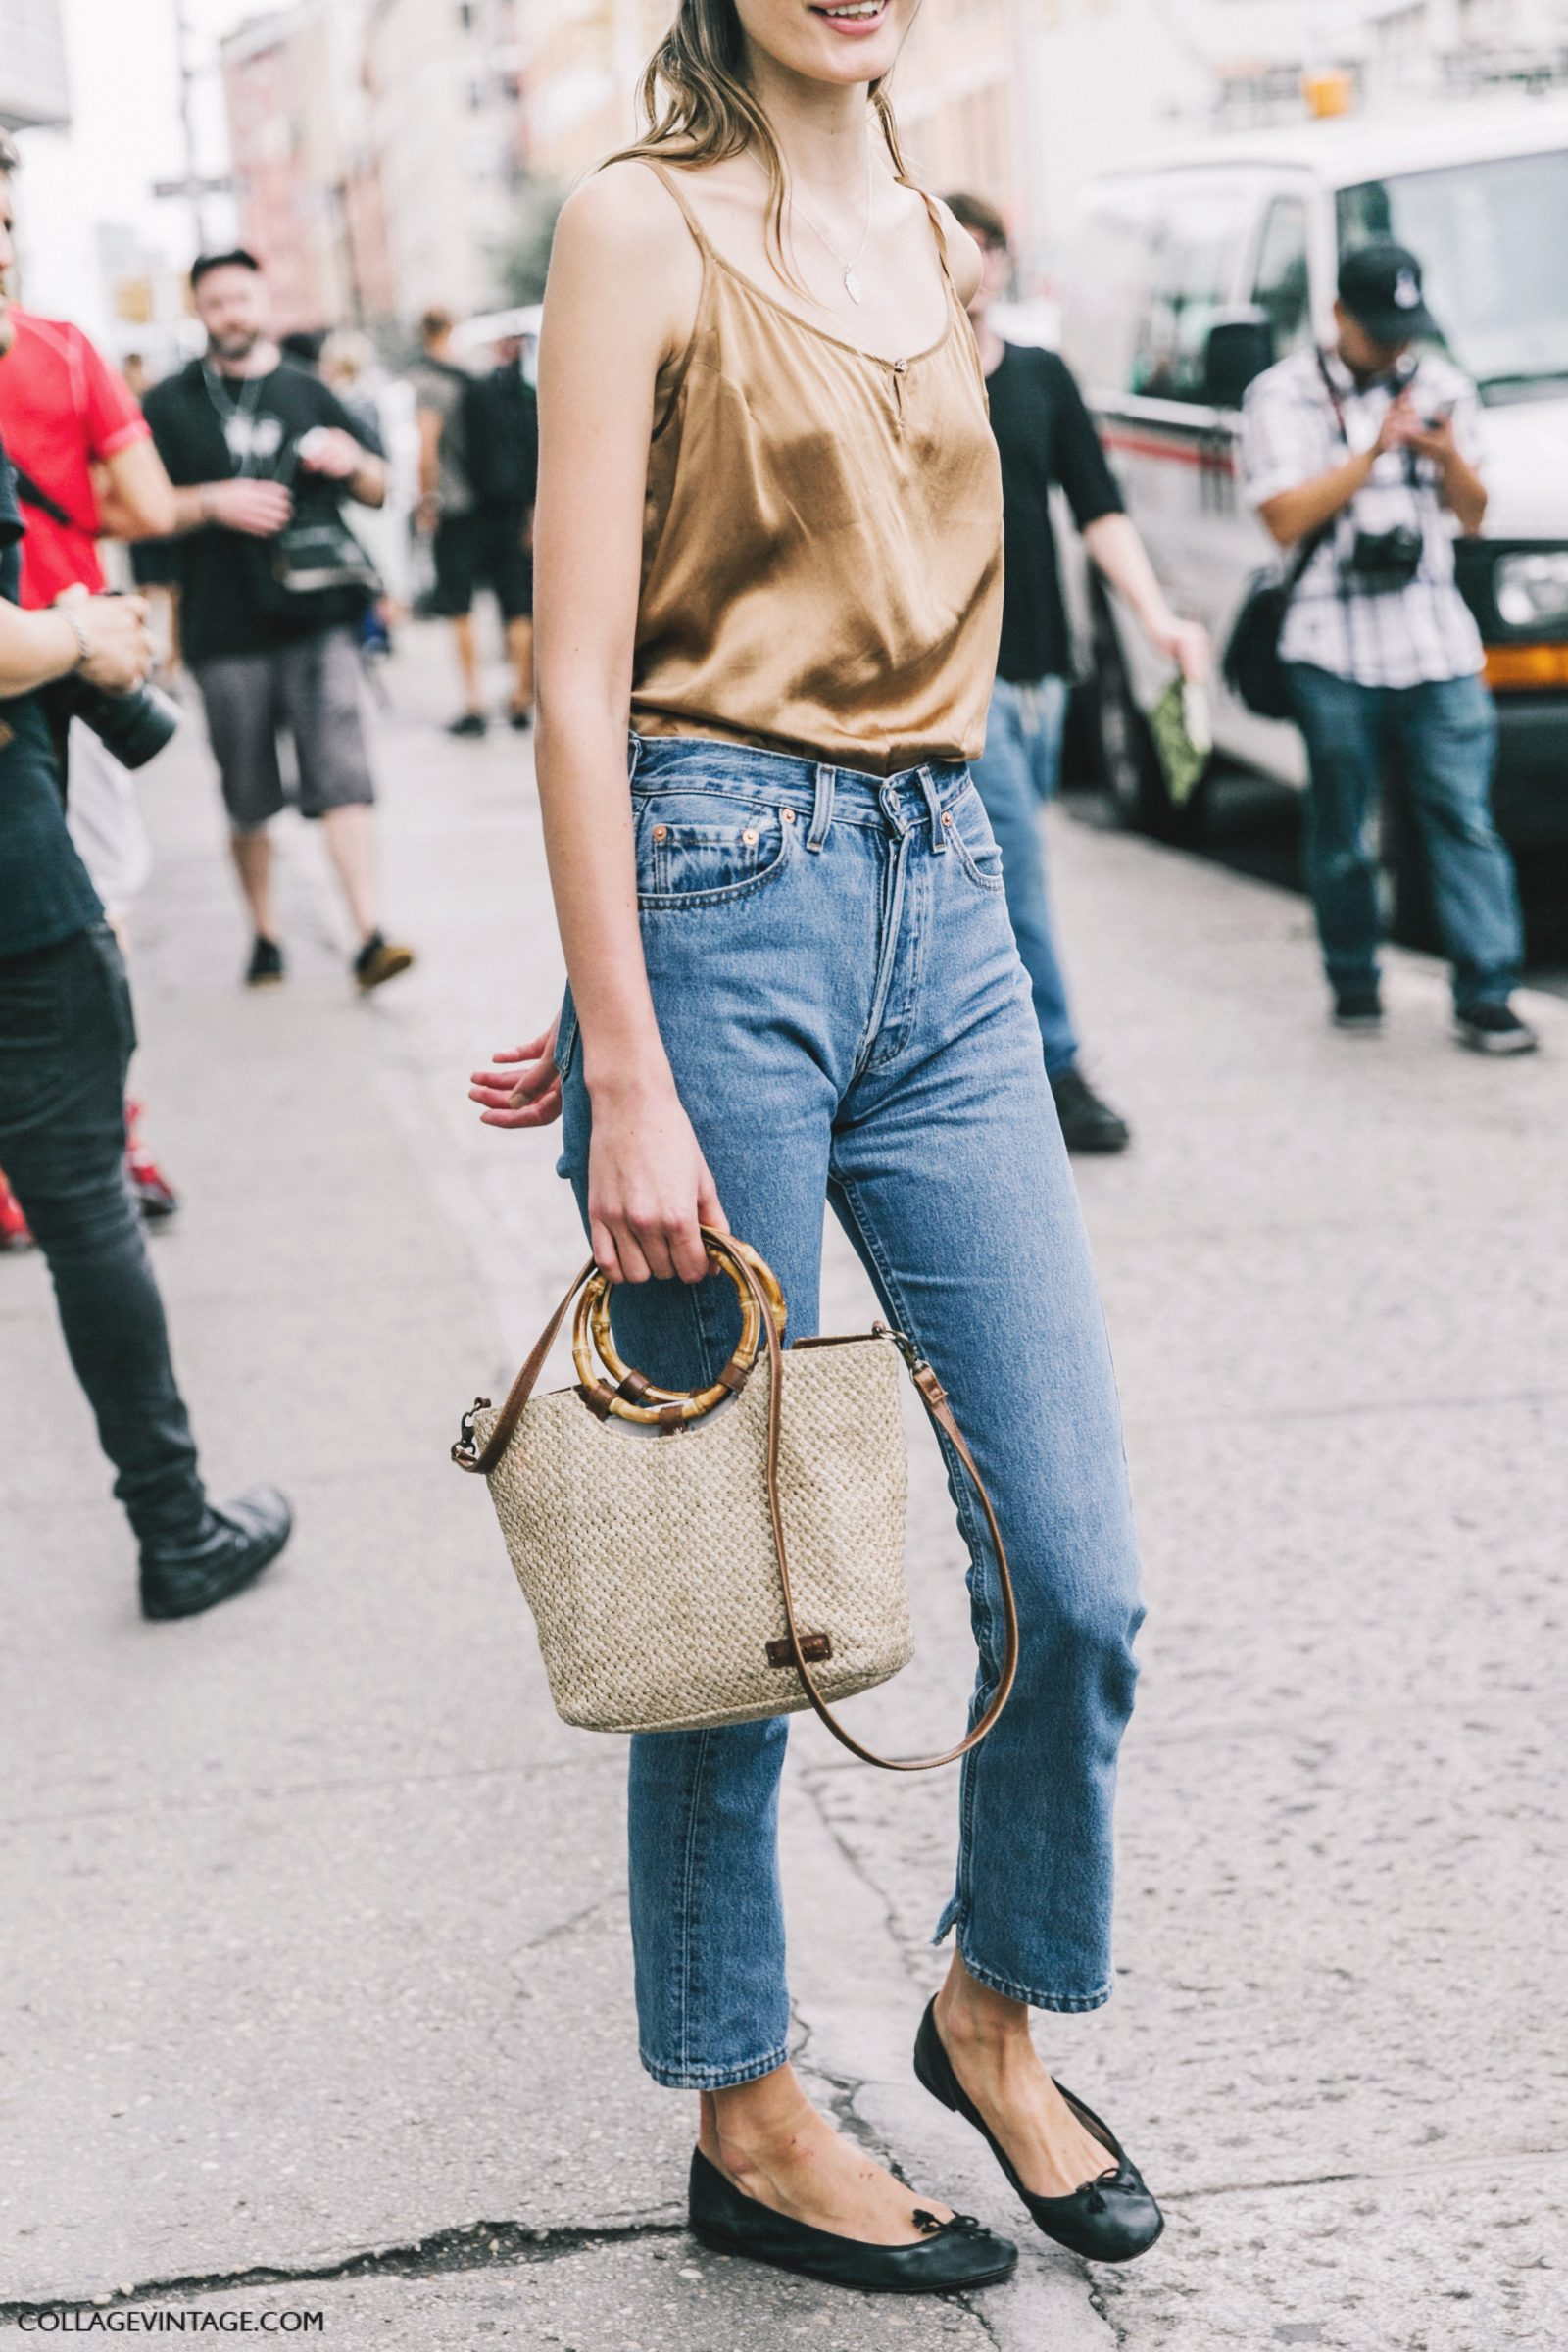 nyfw-new_york_fashion_week_ss17-street_style-outfits-collage_vintage-models-19